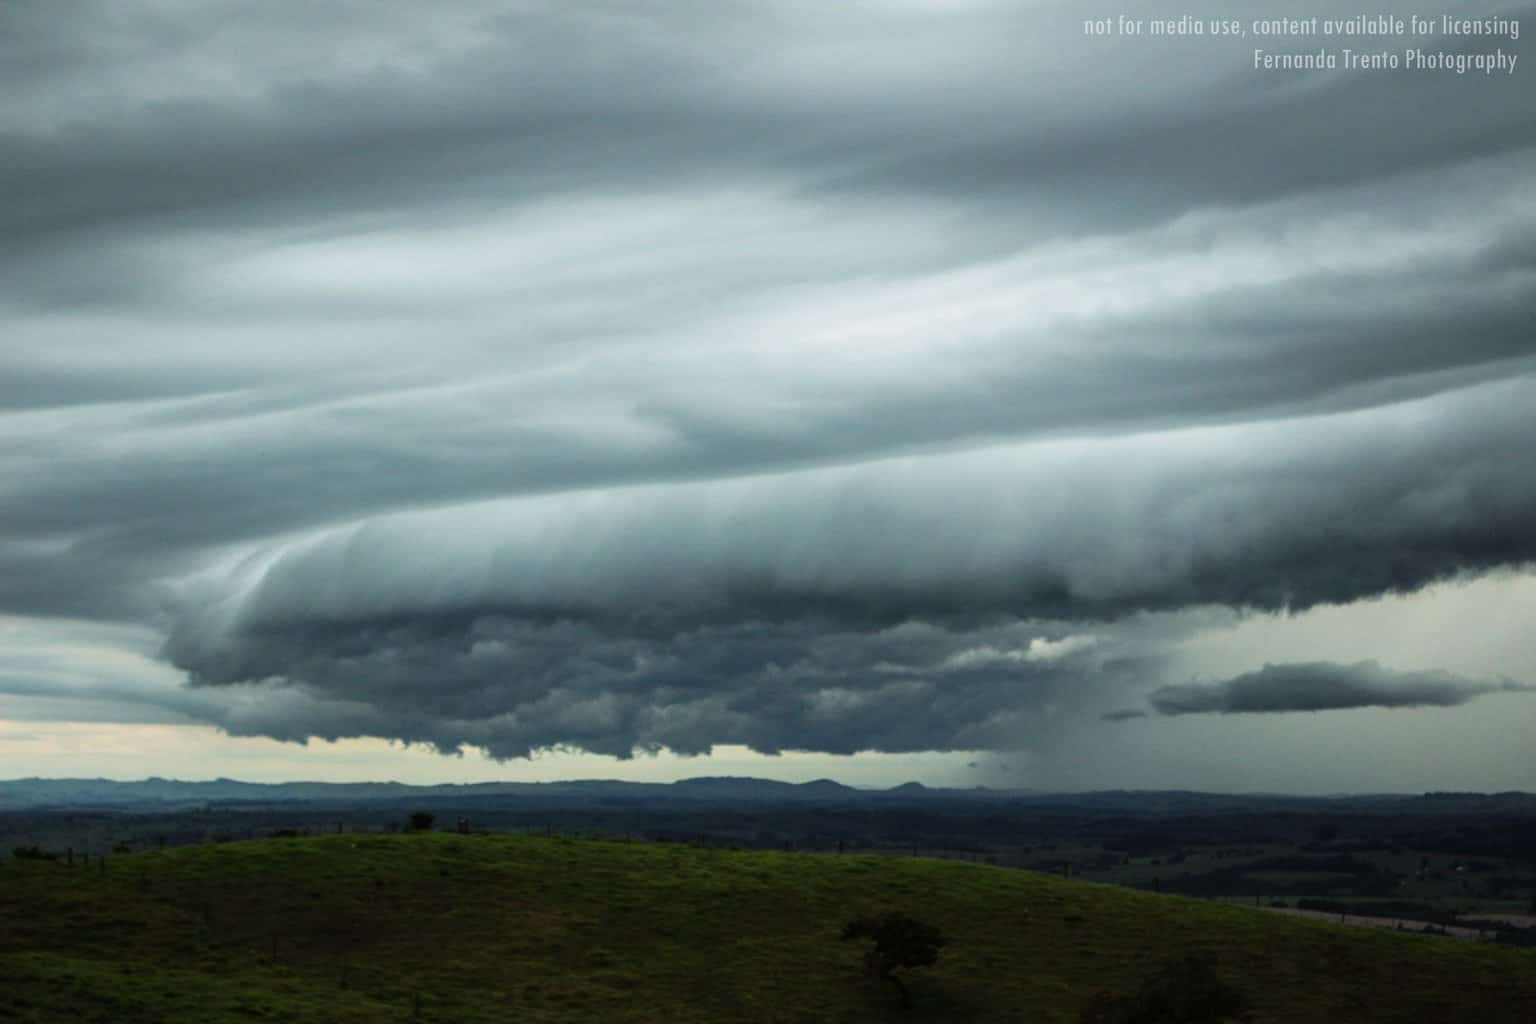 A rising cloud motion often can be seen in the leading part of the shelf cloud, while the underside often appears turbulent. Sunday, April 1, 2018. Santo Antônio da Platina, Paraná- Brazil.